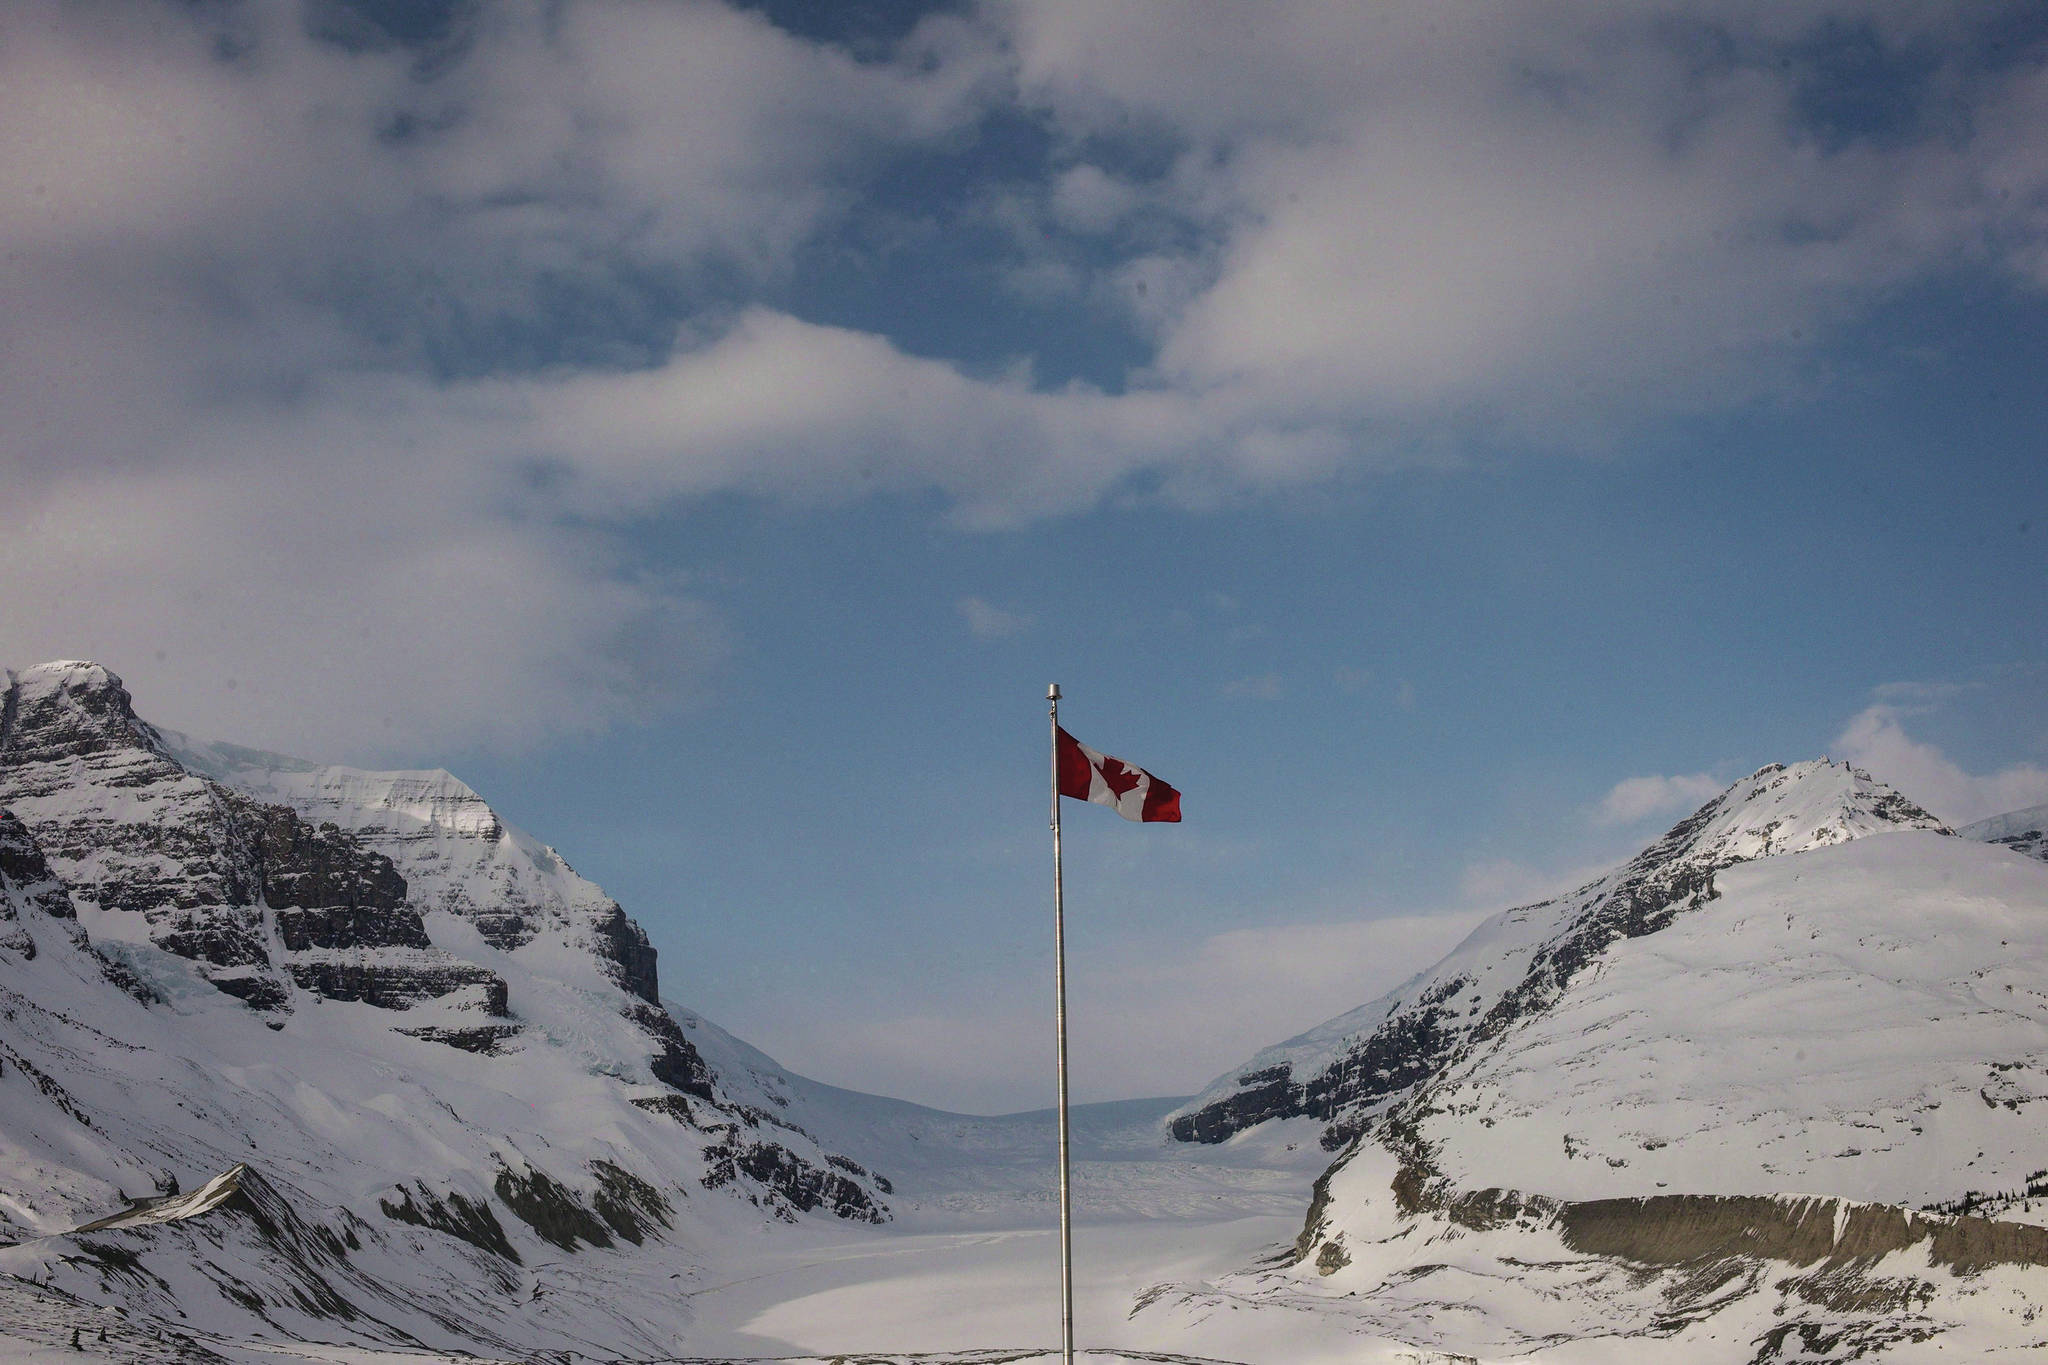 FILE – The Canadian flag flies over the Columbia Icefields' Athabasca Glacier in Jasper National Park, on May 7, 2014. THE CANADIAN PRESS/Jeff McIntosh, File